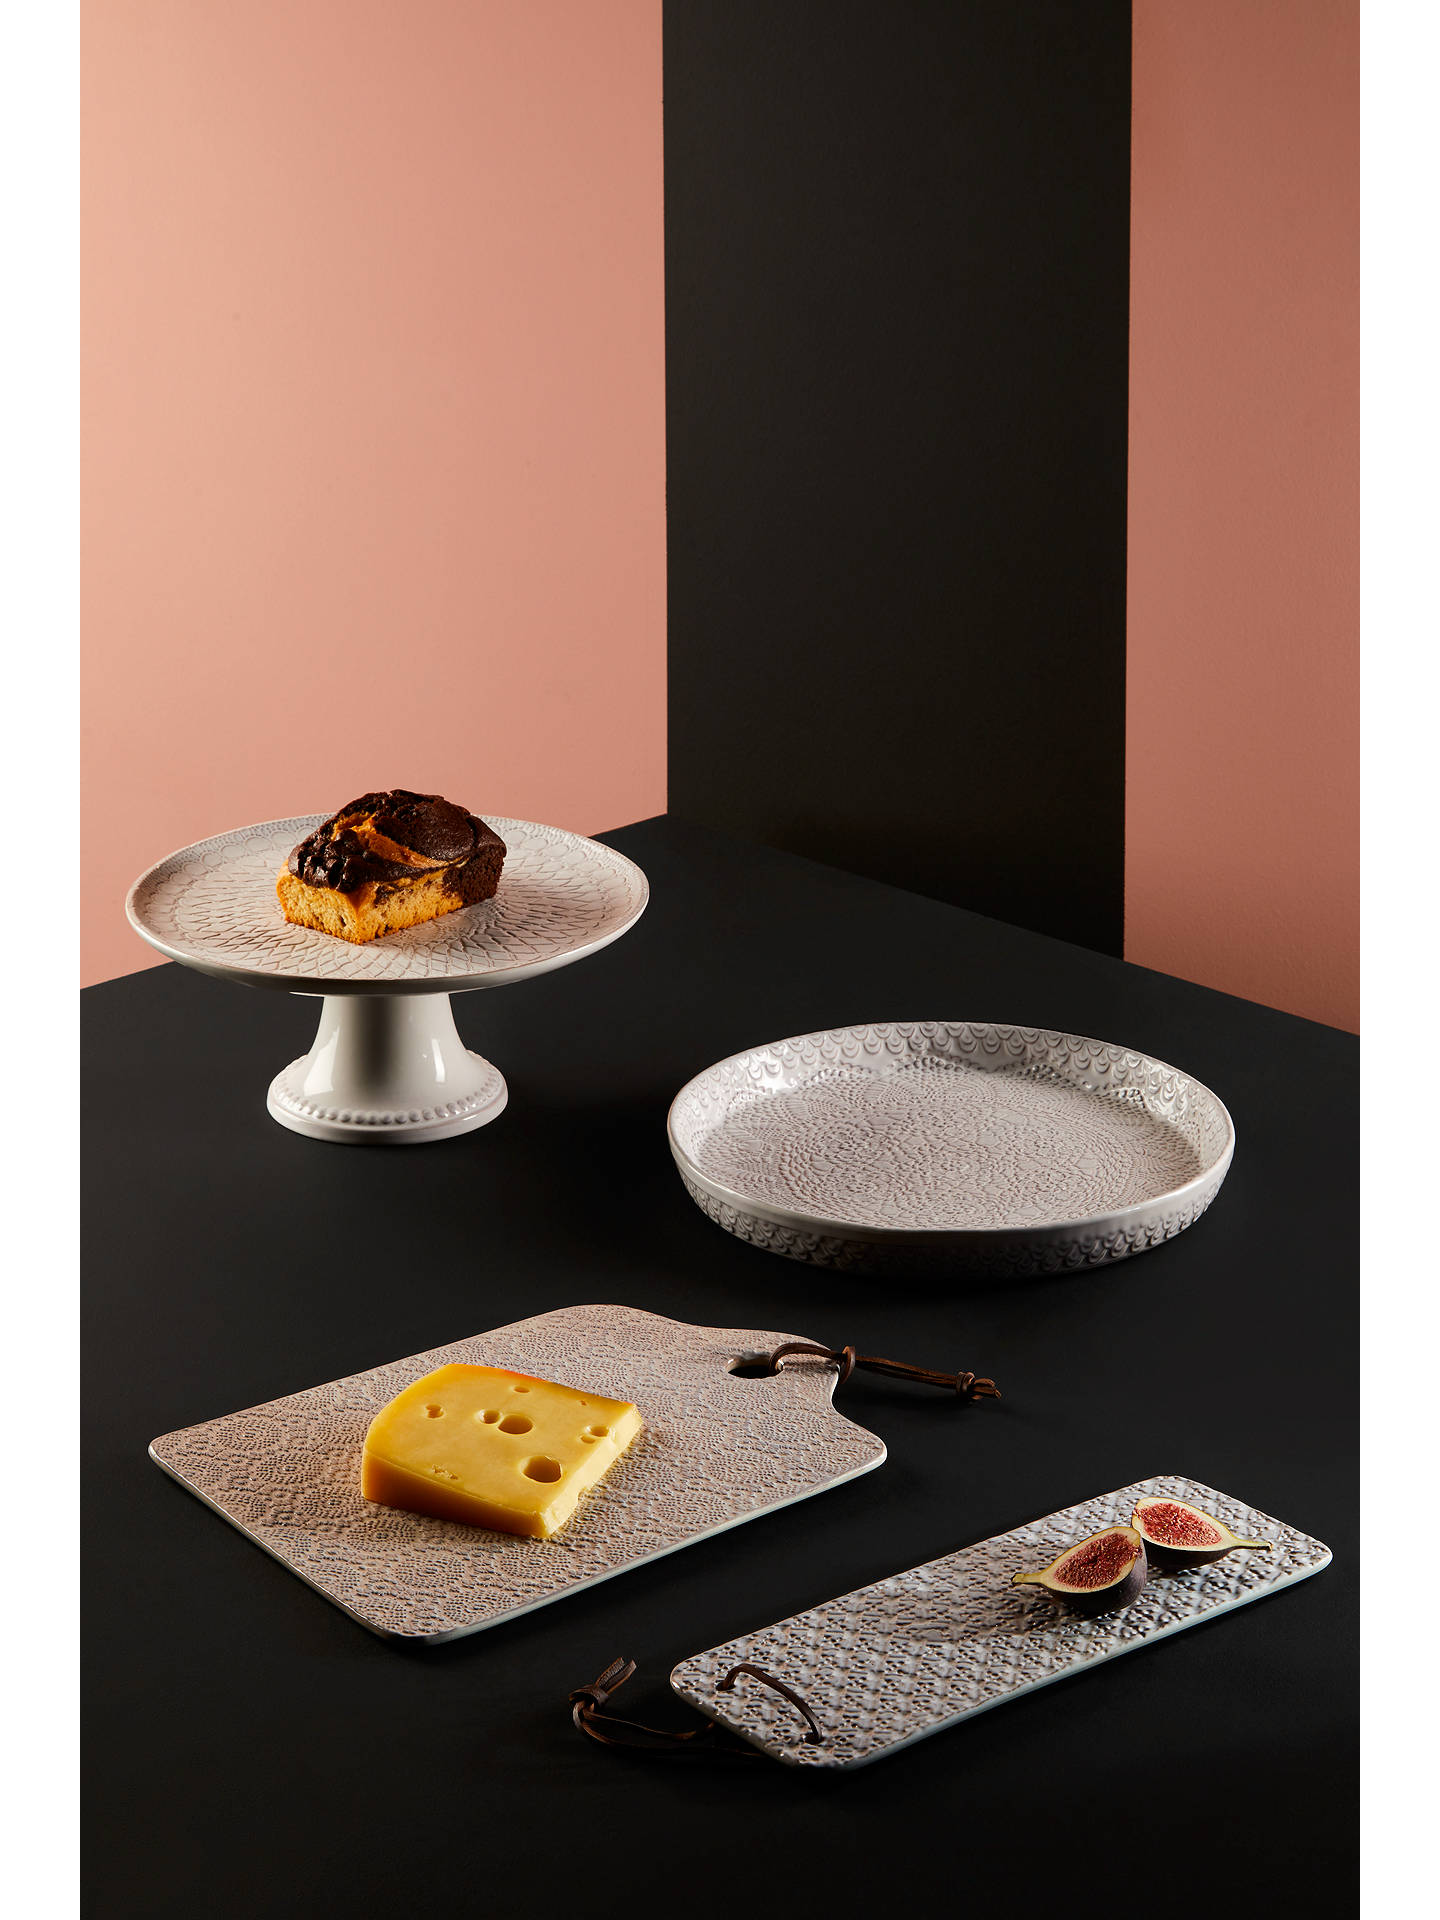 BuyJohn Lewis & Partners Embossed Long Cheeseboard, White, L32cm Online at johnlewis.com